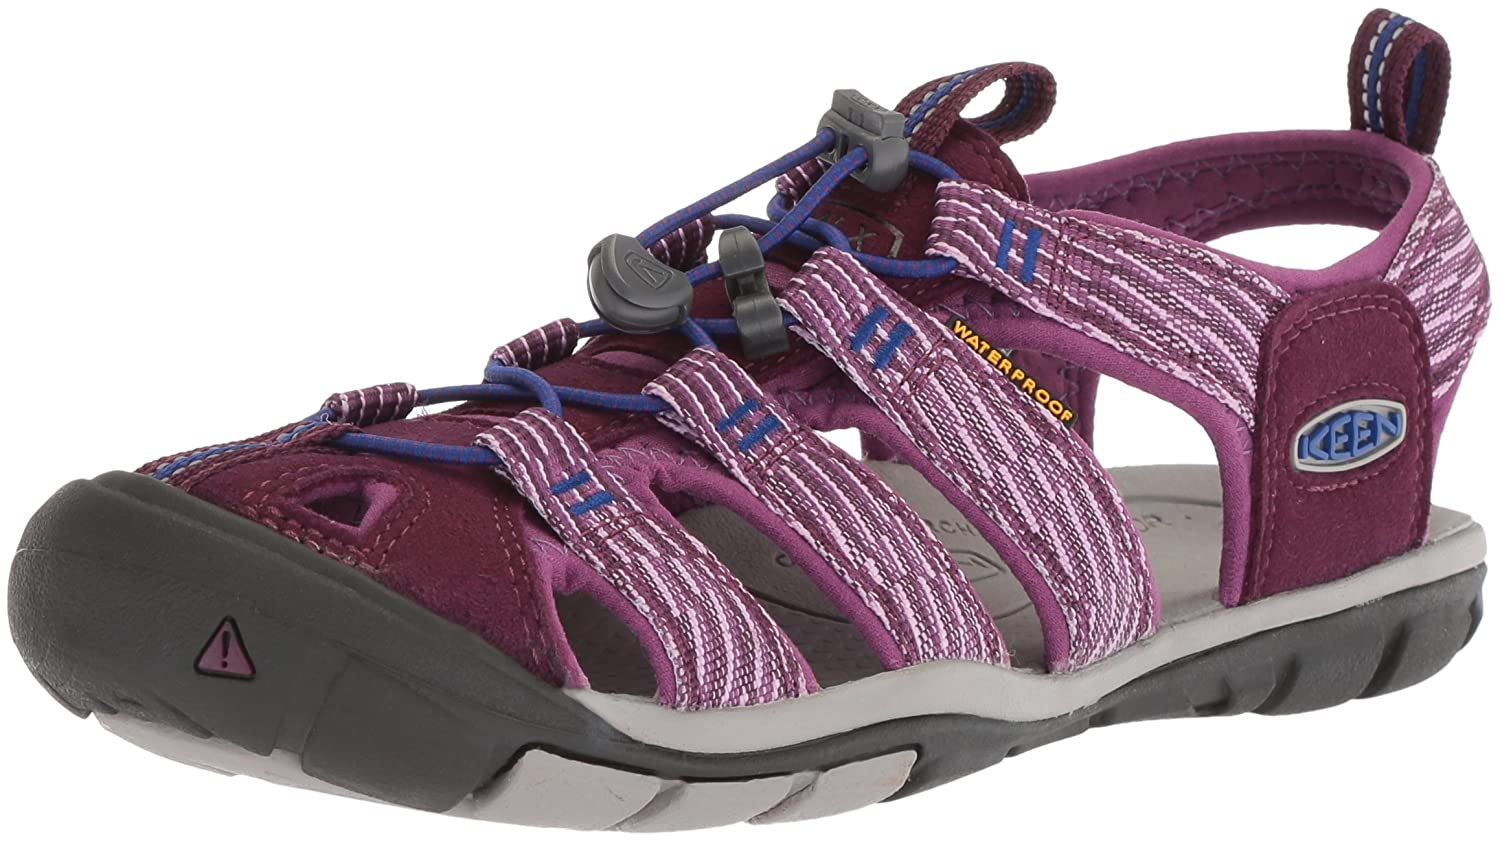 KEEN Women's Clearwater CNX-W Sandal B06ZZC92HJ 5.5 B(M) US|Grape Wine/Grape Kiss